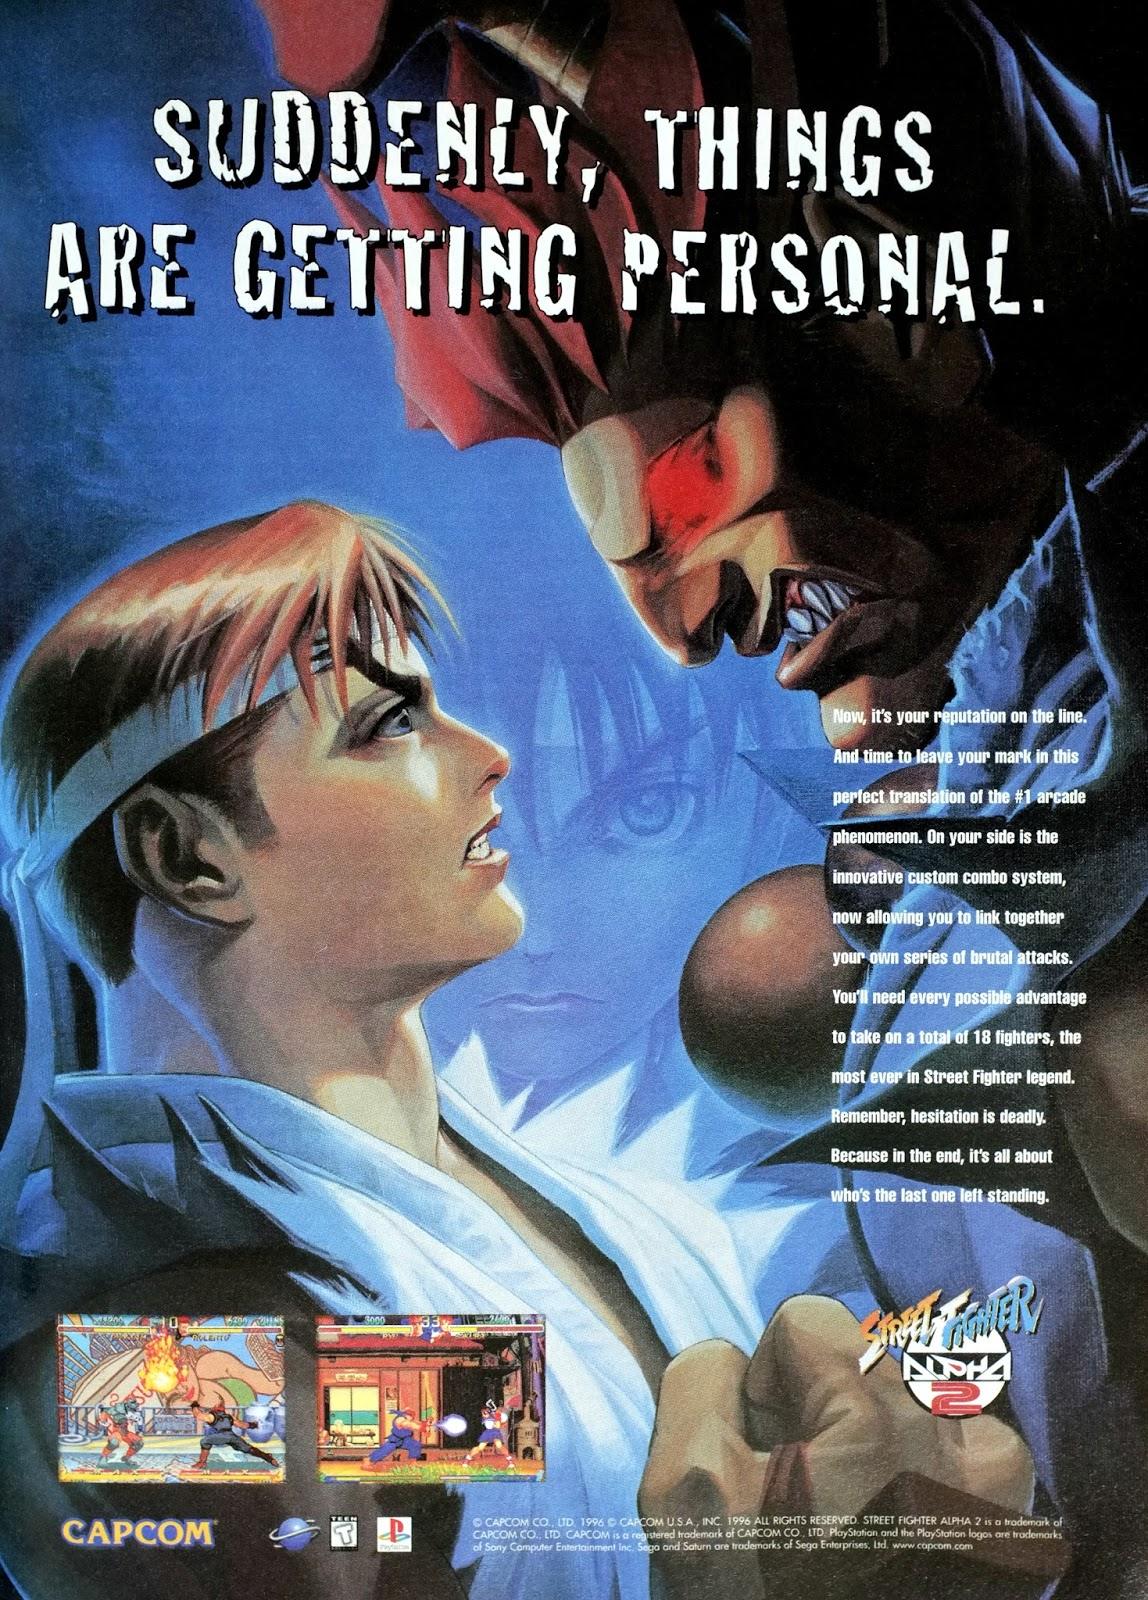 Retro Gaming Art Street Fighter Alpha 2 For Saturn And